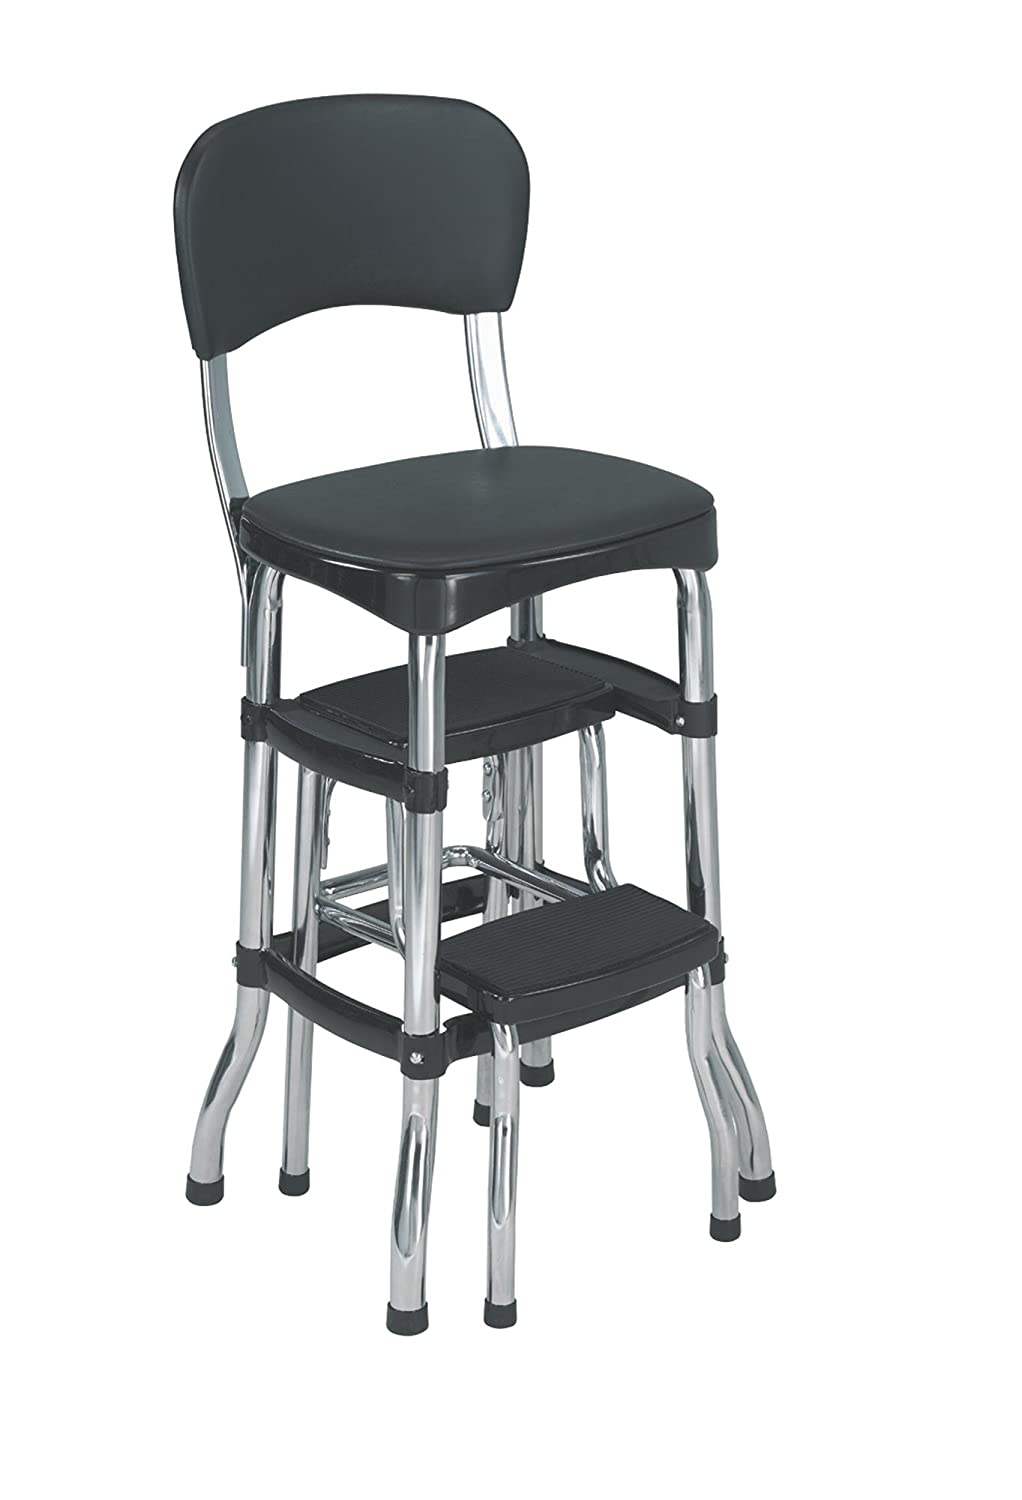 Amazon.com Cosco Black Retro Counter Chair / Step Stool Black Home Improvement  sc 1 st  Amazon.com & Amazon.com: Cosco Black Retro Counter Chair / Step Stool Black ... islam-shia.org